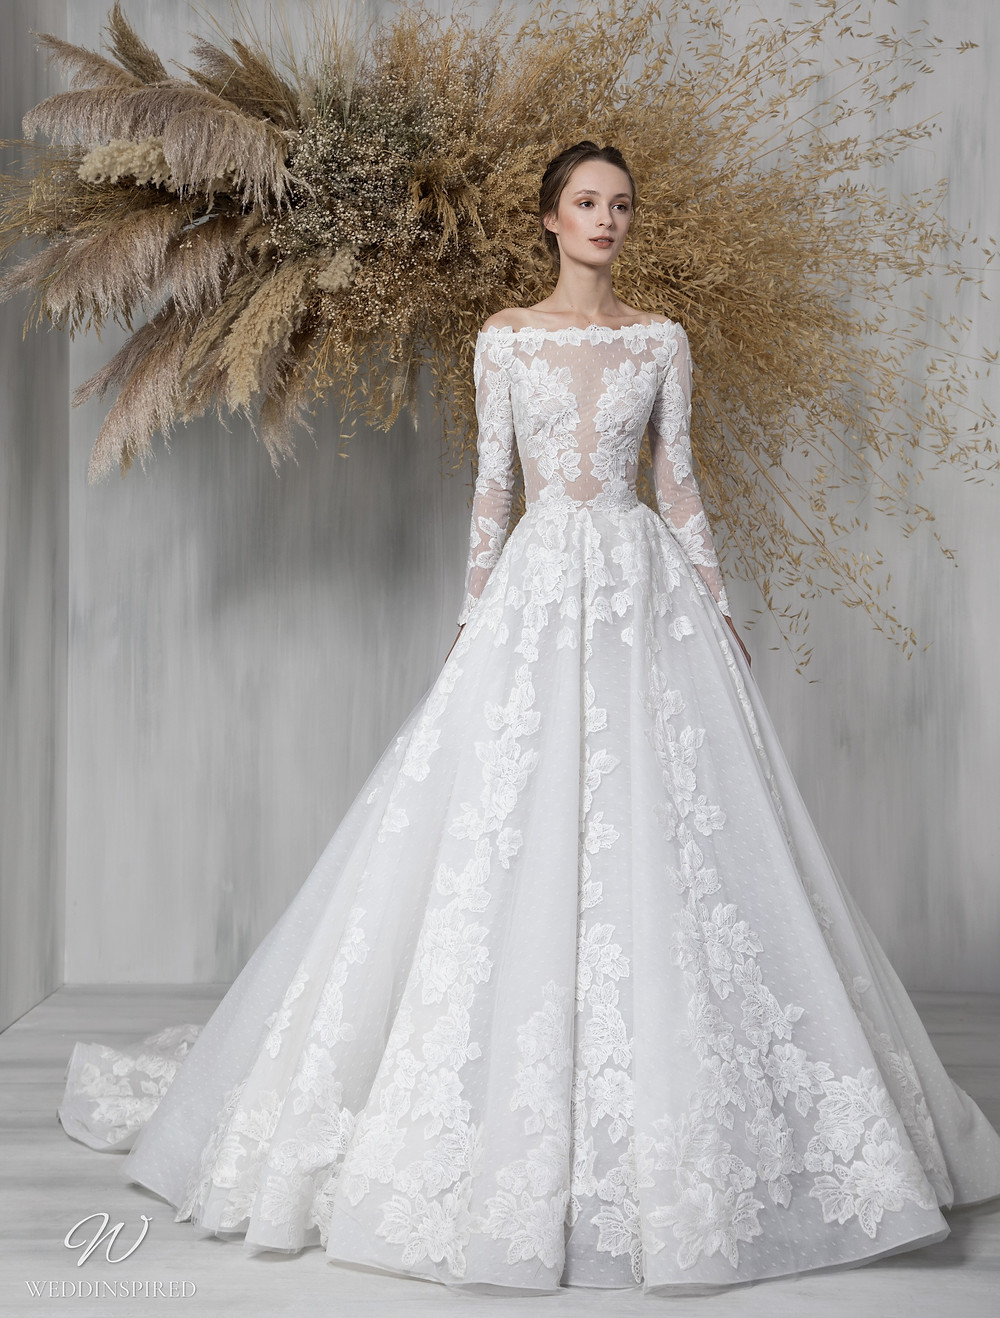 A Tony Ward 2021 lace and mesh ball gown wedding dress with long sleeves and an illusion bodice